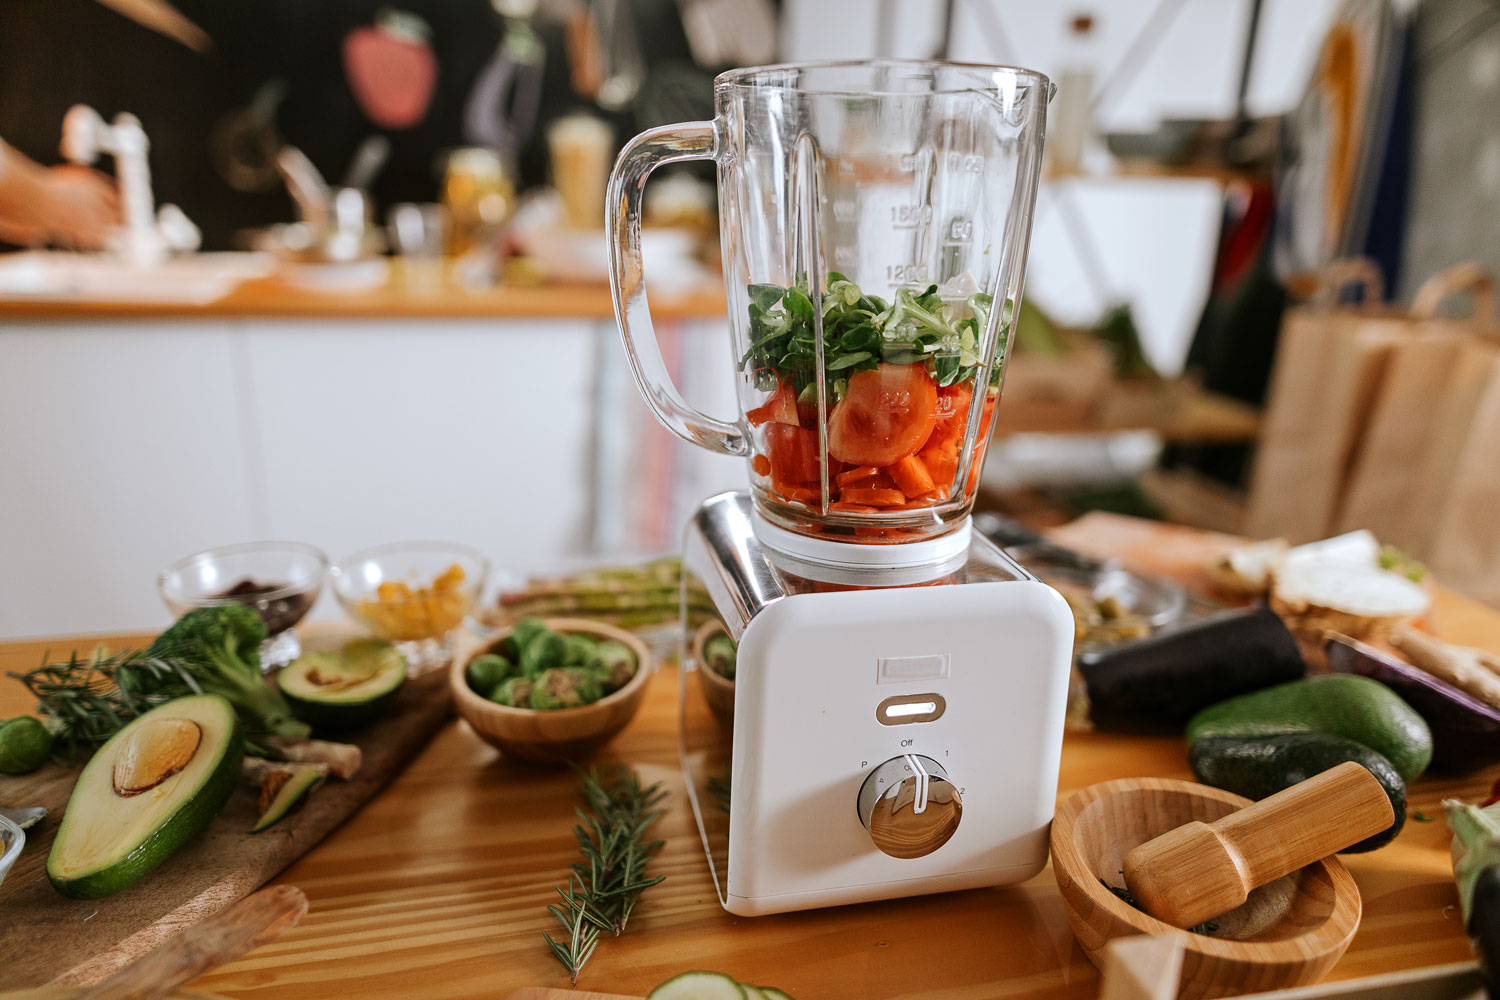 What To Do If You Do not Have A Blender [8 Alternatives]